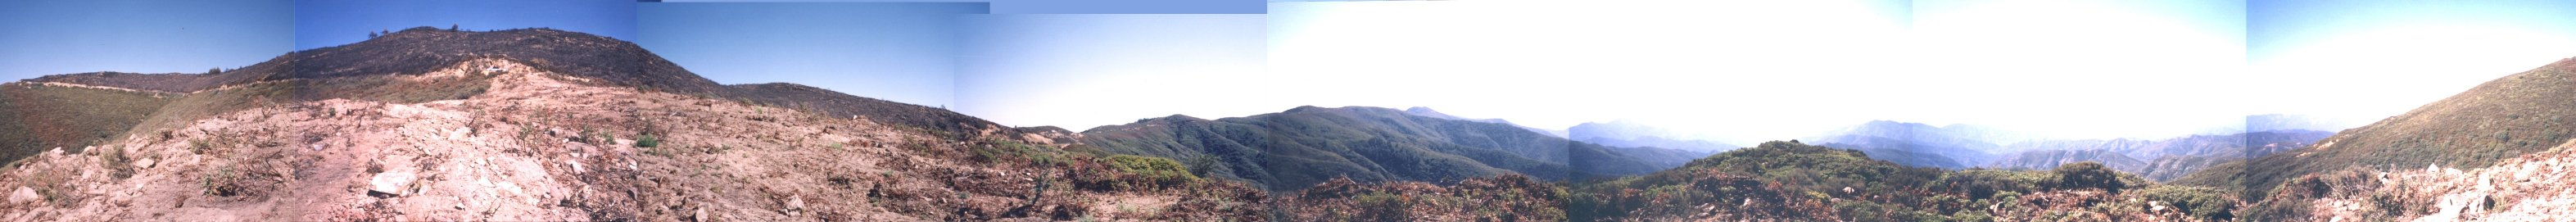 360-degree panorama standing at the confluence point (thumbnail is a partial view)